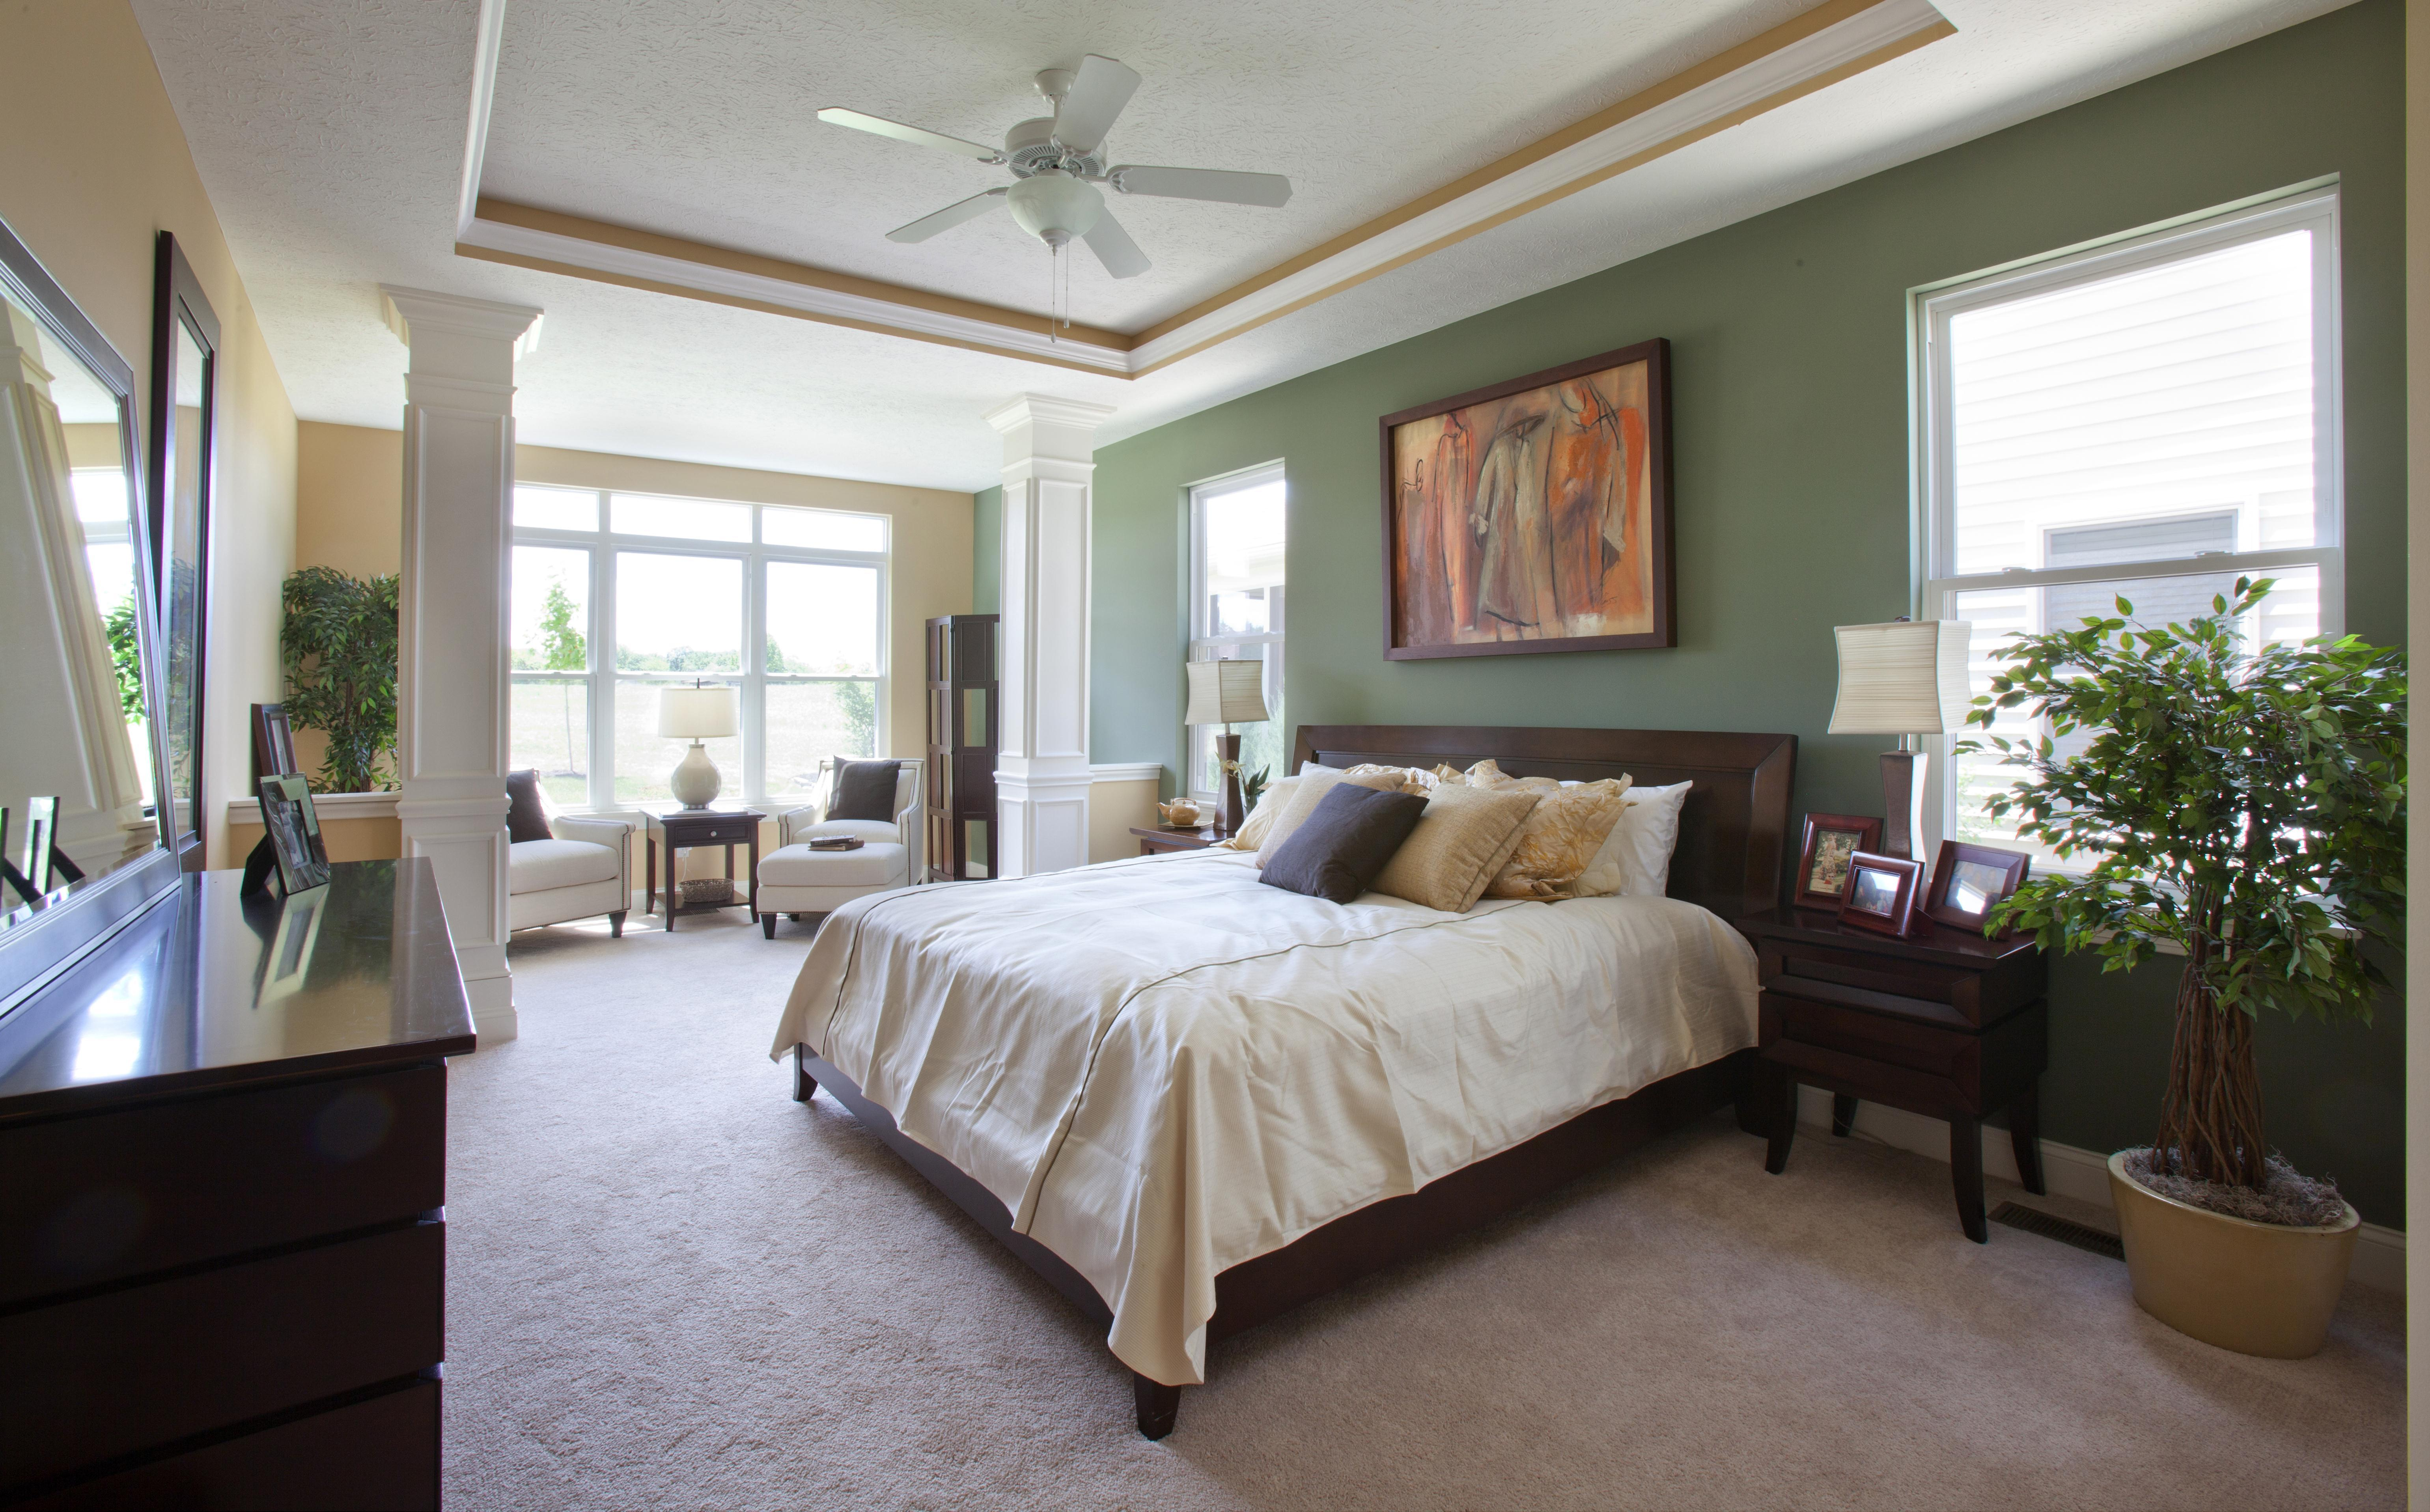 Bedroom featured in the Tuscany Villa By Parkview Custom Homes  in Cleveland, OH